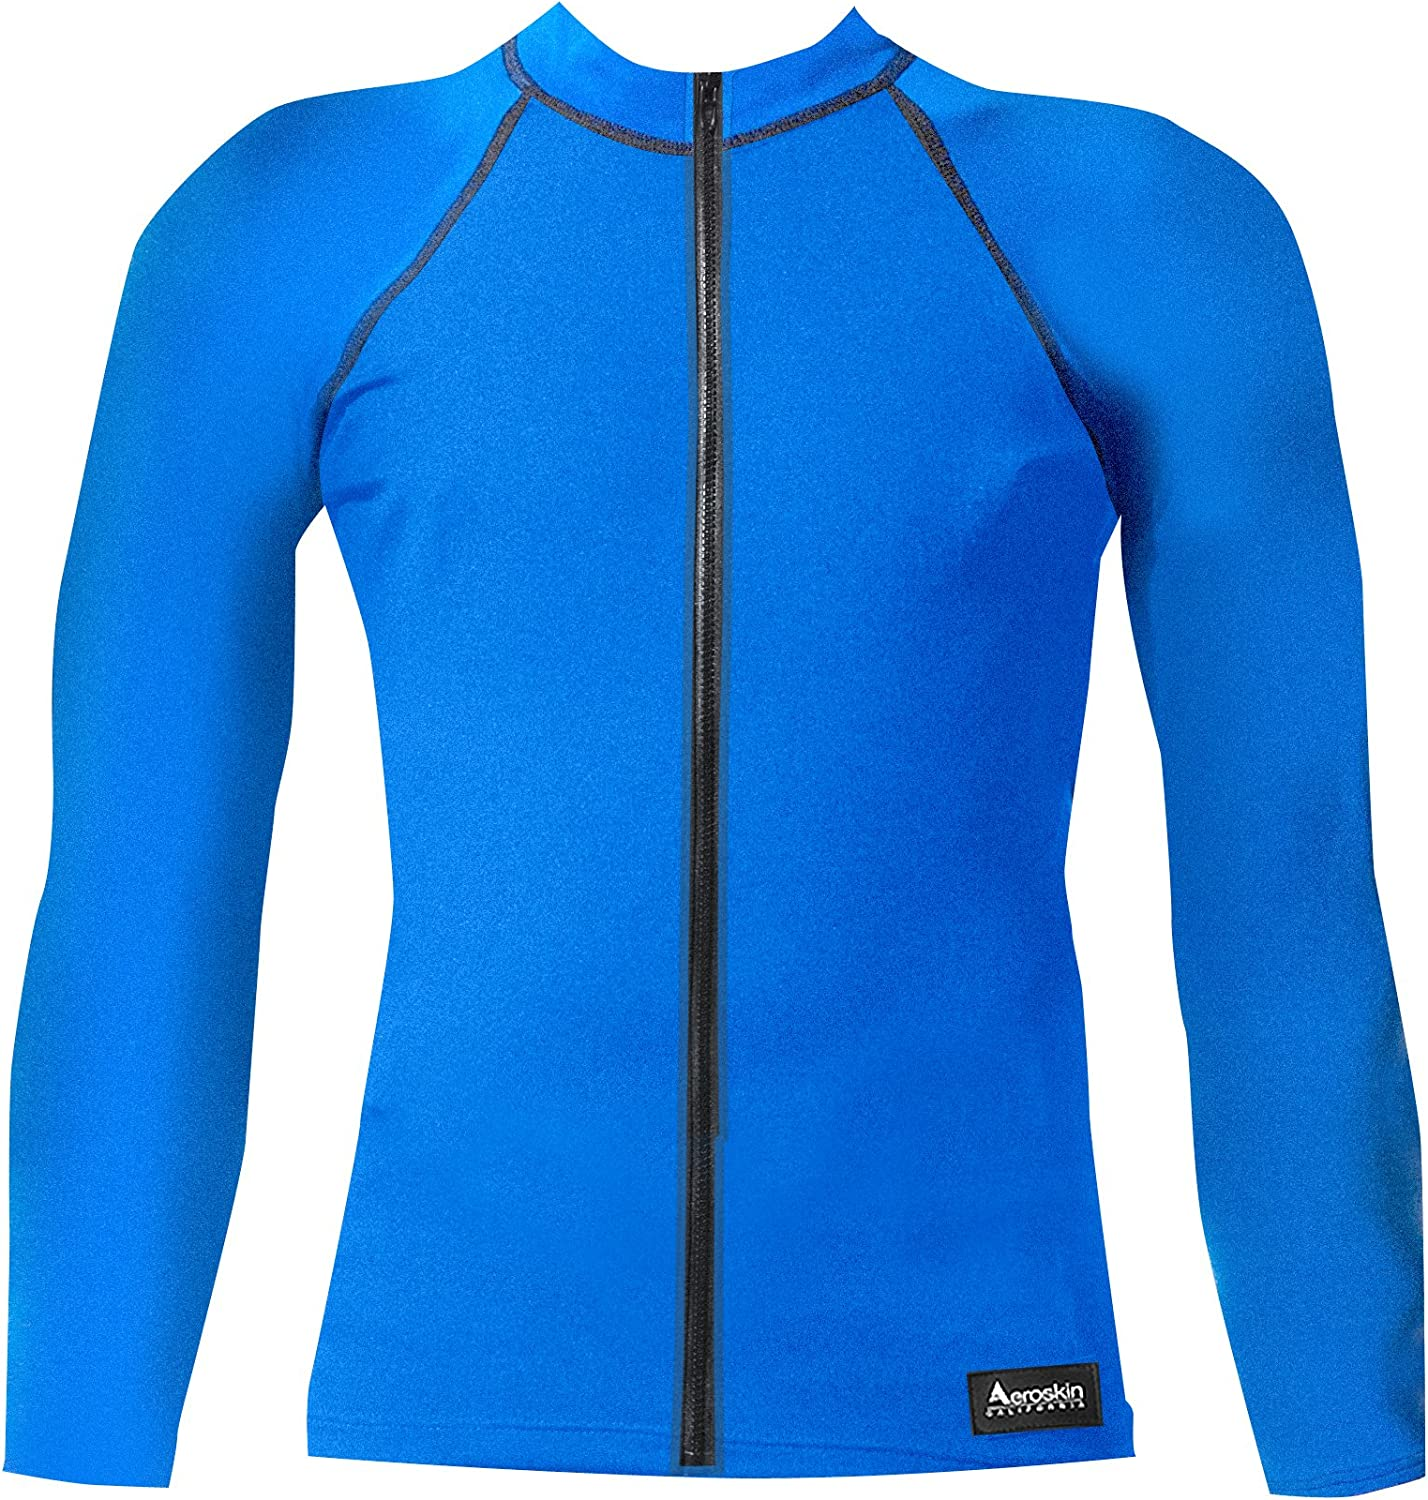 Aeroskin Nylon Long Sleeve Rash Guard with Front Zip, Solid colors (bluee, XLarge)